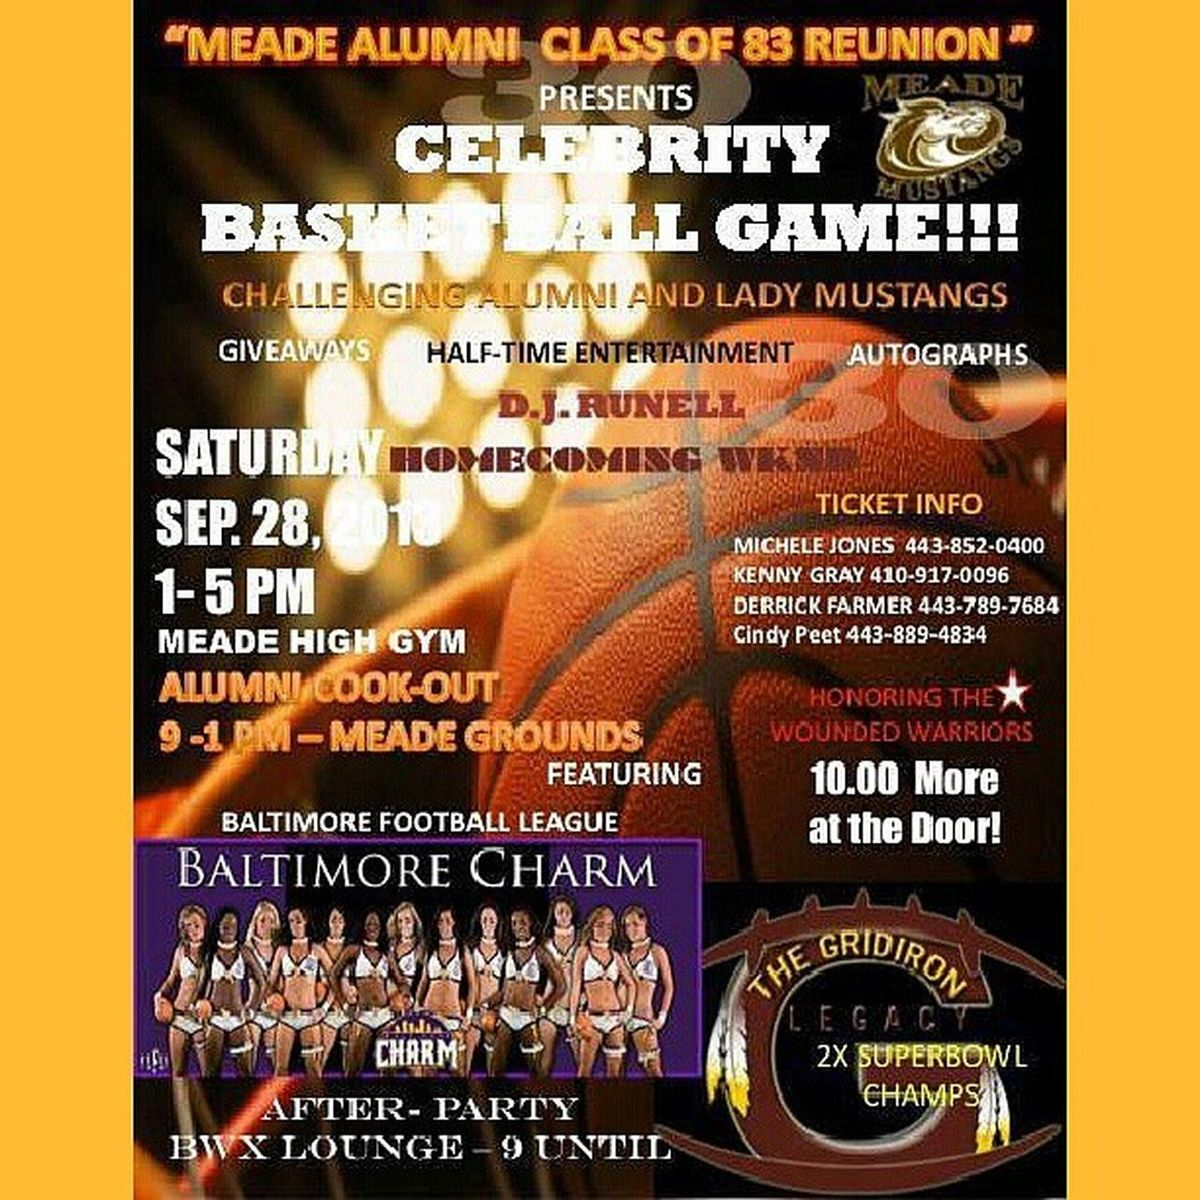 "The flyer is for Saturday, but tomorrow... ""This Friday and Saturday is Meade High School Homecoming Weekend...Friday Sept 27th Football Game at 6:30, Alumni Tailgate from 3pm on...Meade is 37 years old and l know we can get Alumni from class 1977-2012 out to the Football Game.Saturday Sept 28th The Alumni cookout from 9am - 1pm & Celebrity Basketall Game from 1pm - 5pm."" - Coach Gray Meade MeadeHigh Whoop !!!!"